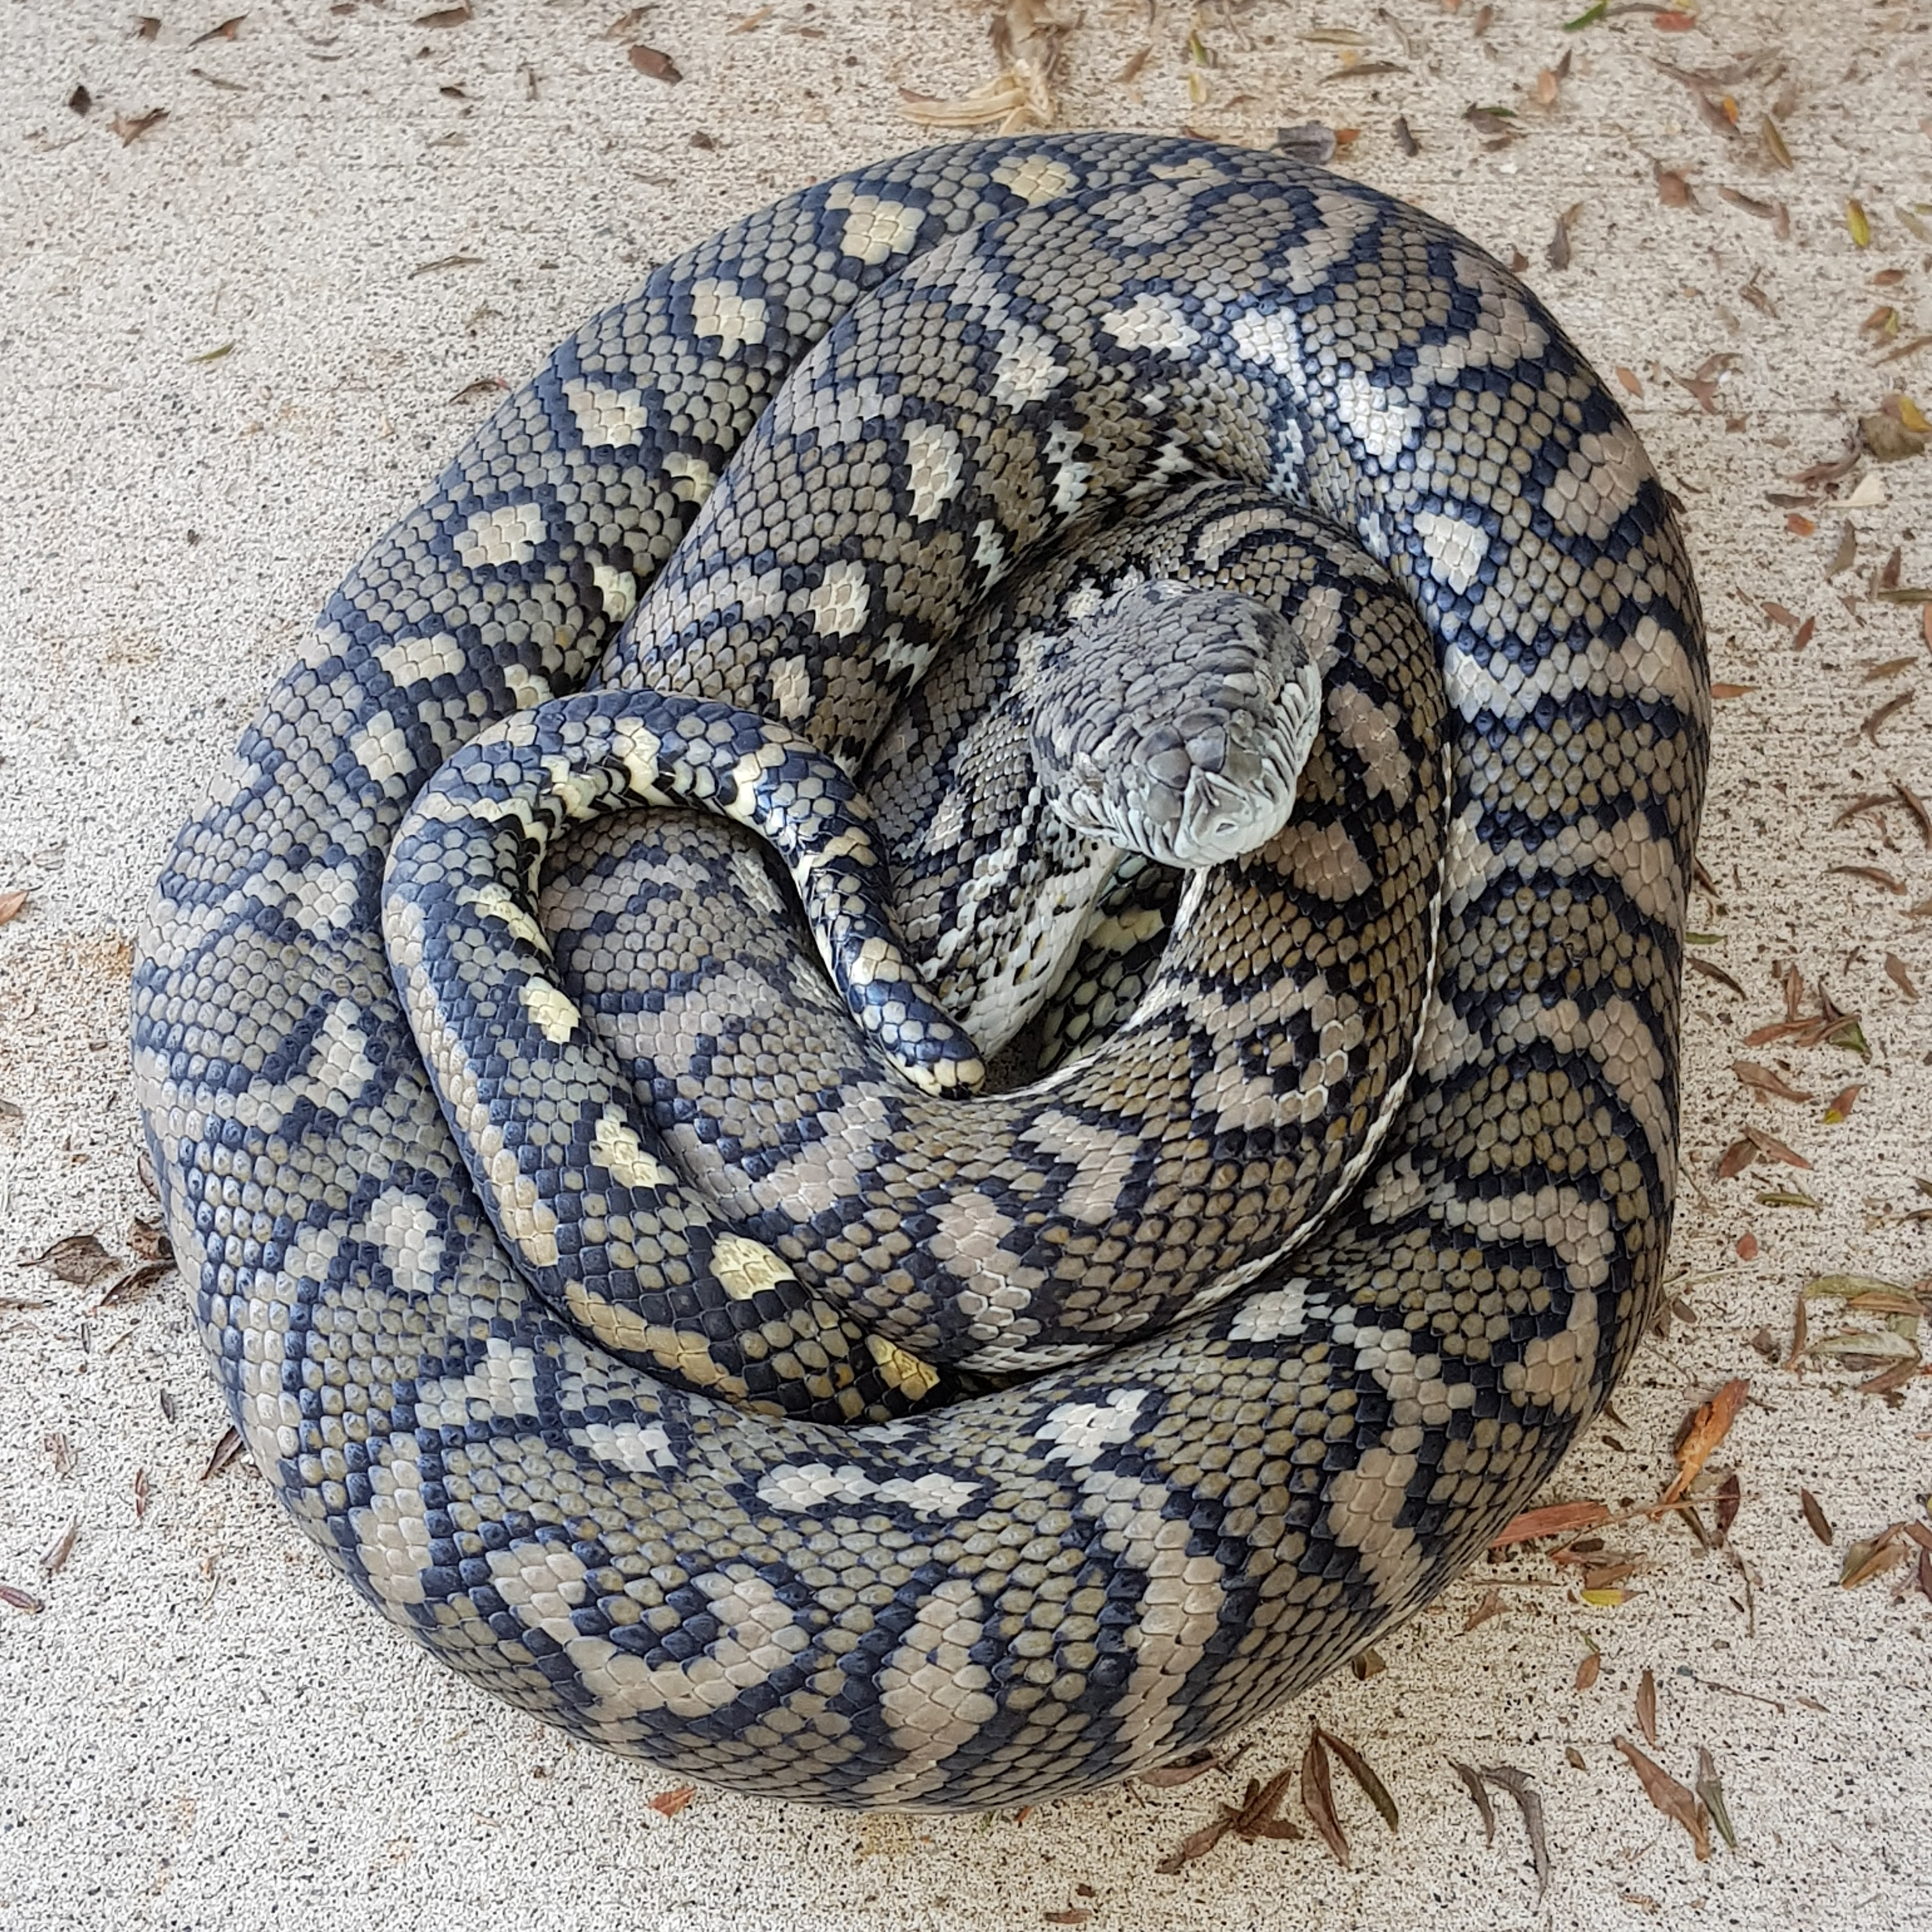 snake curled up